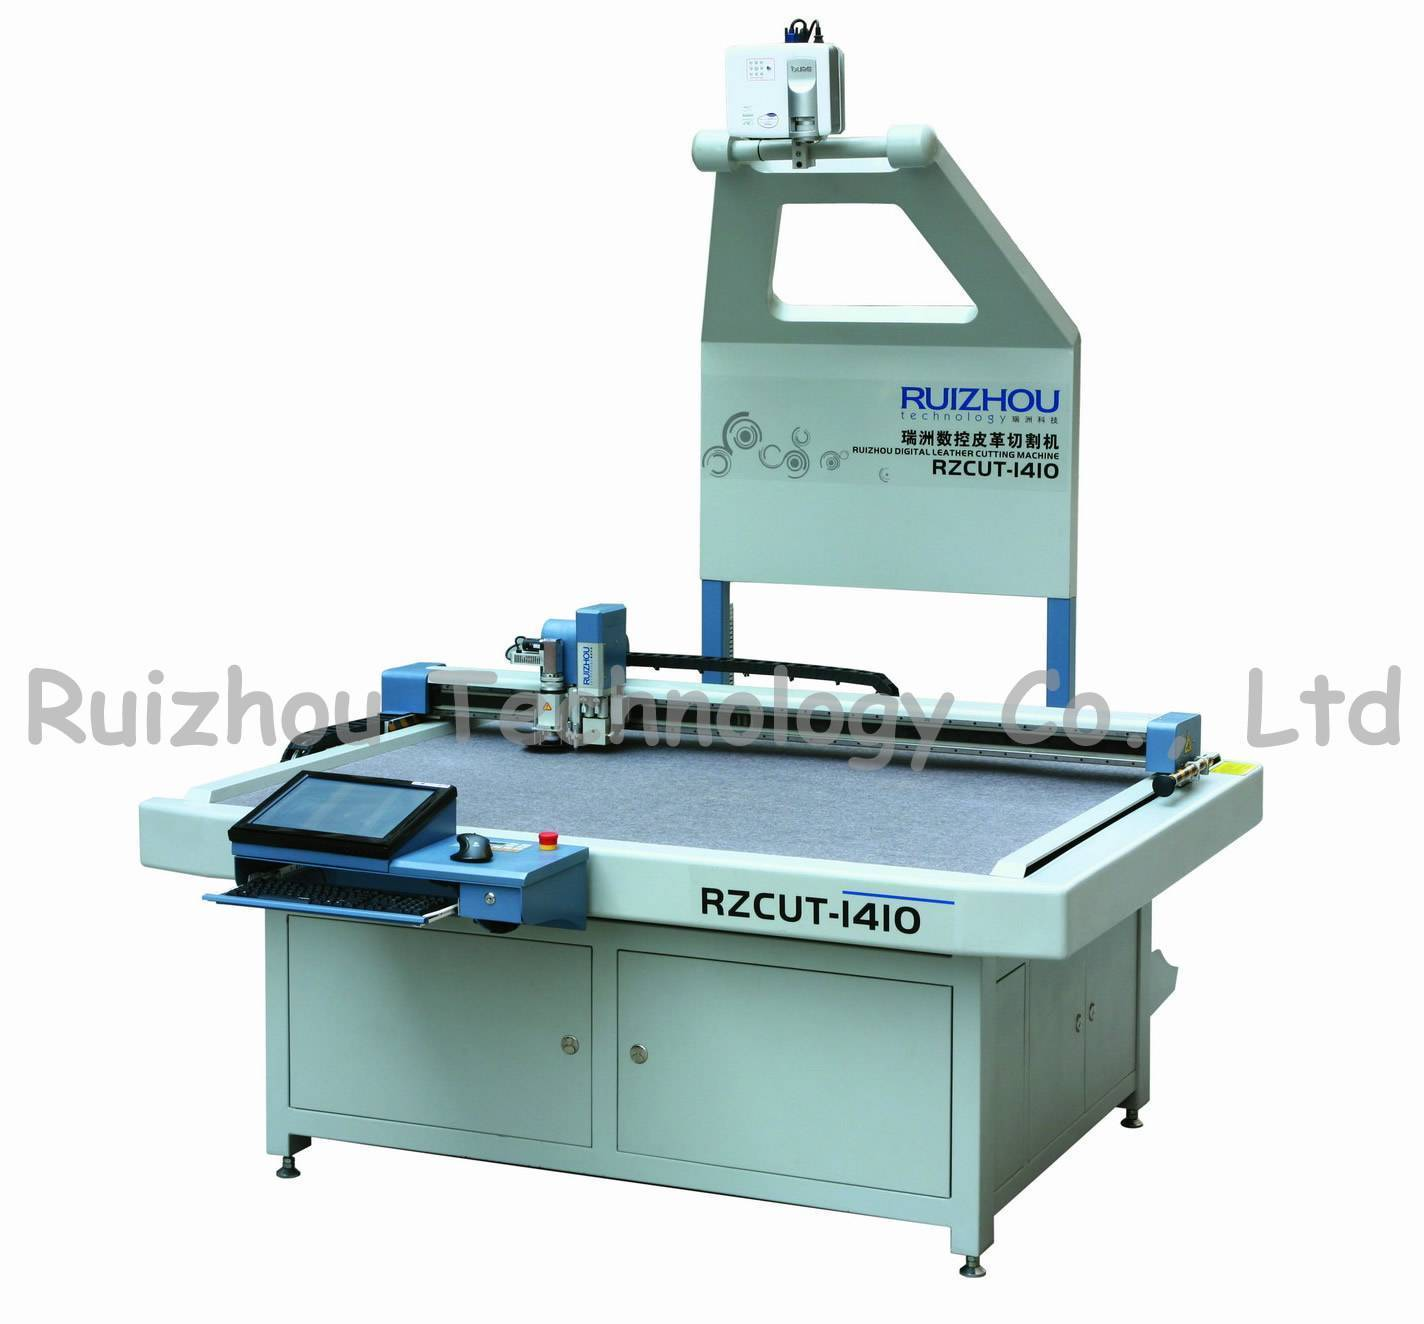 Multifunctional leather cutting system